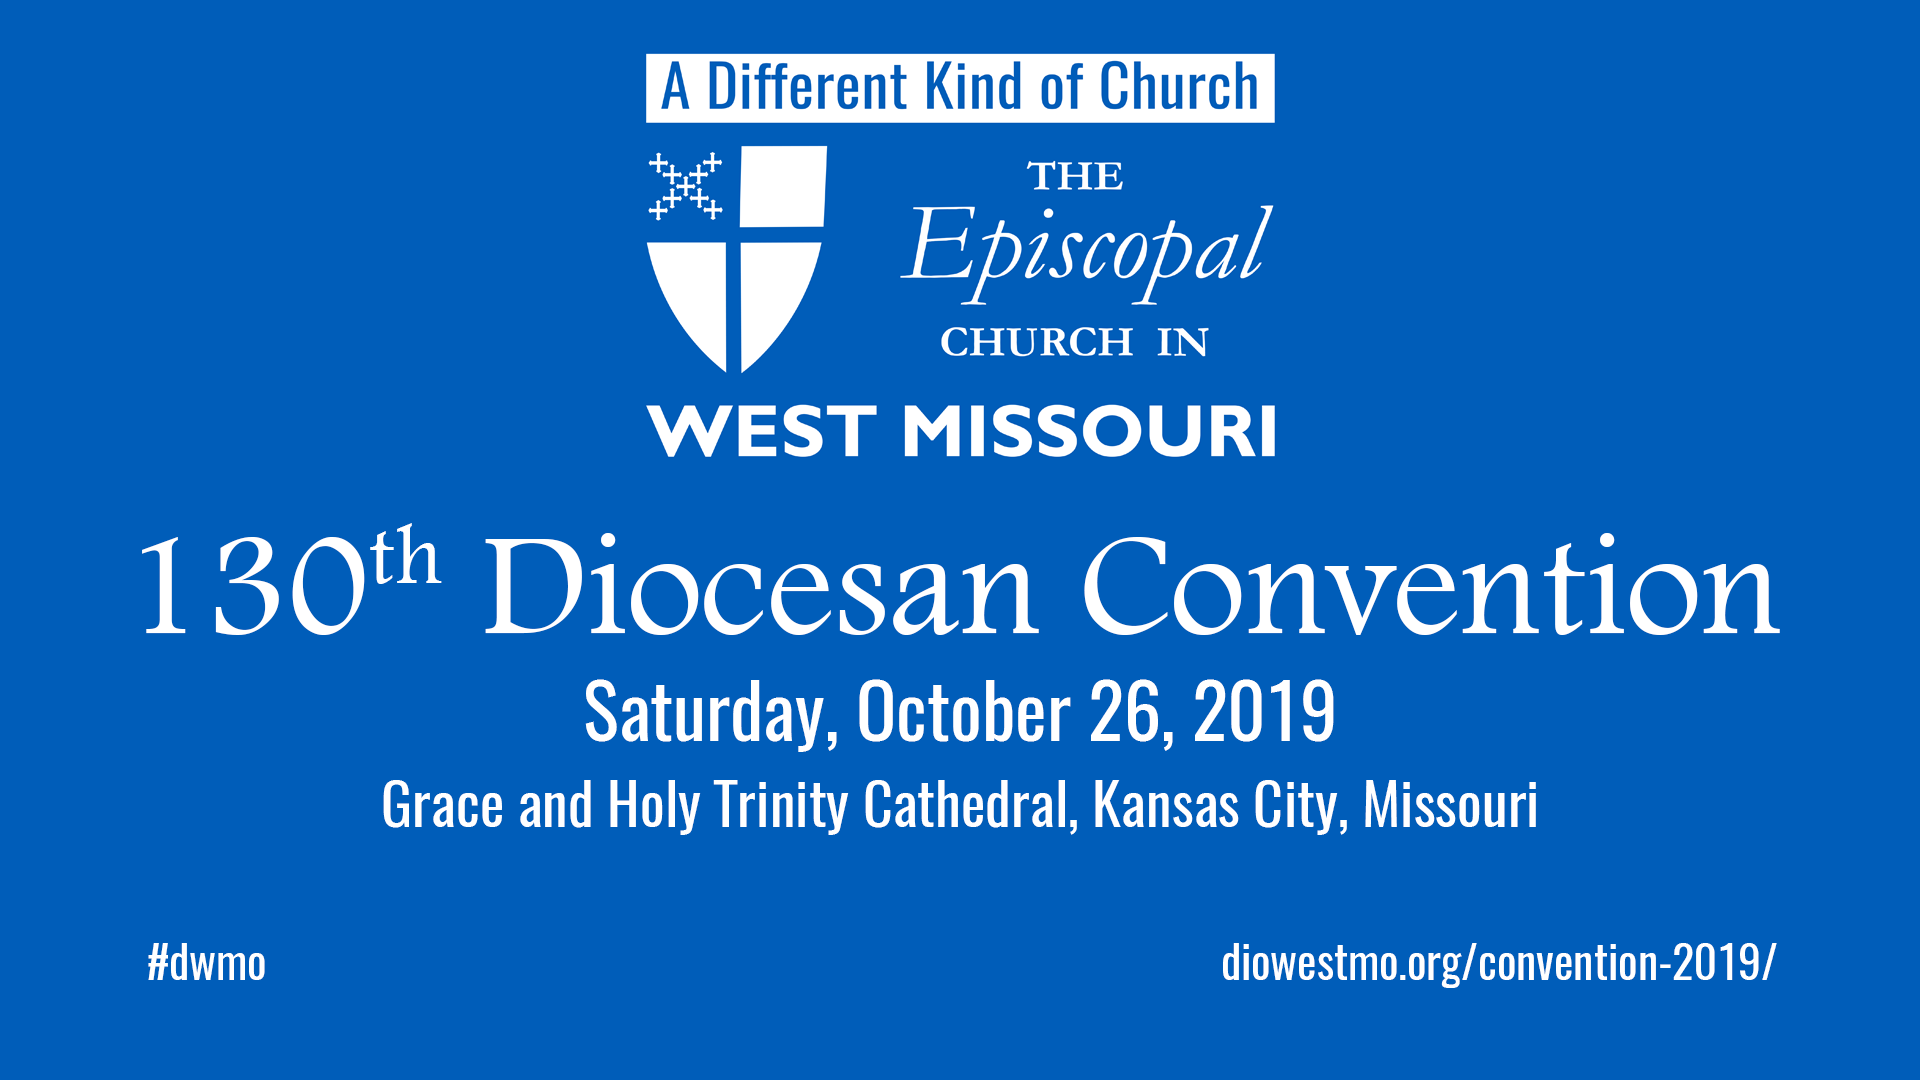 FINAL REMINDER:  Diocesan Convention Registration closes this Friday, October. 18